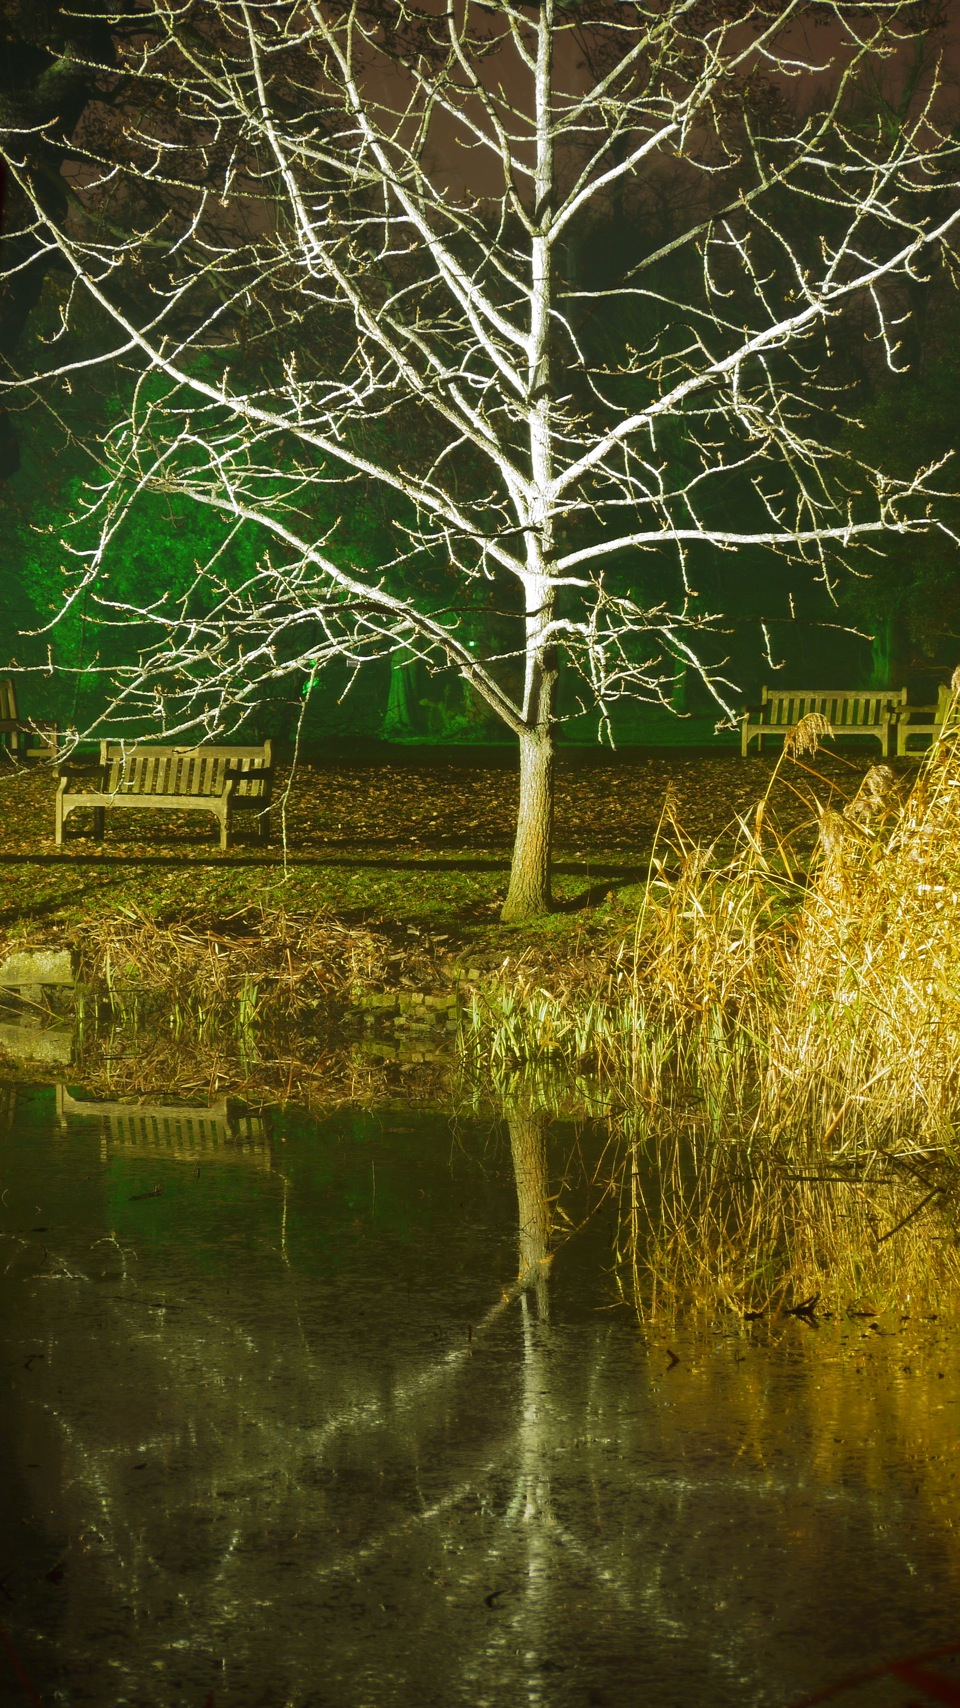 kew_illumination trail_1213_7